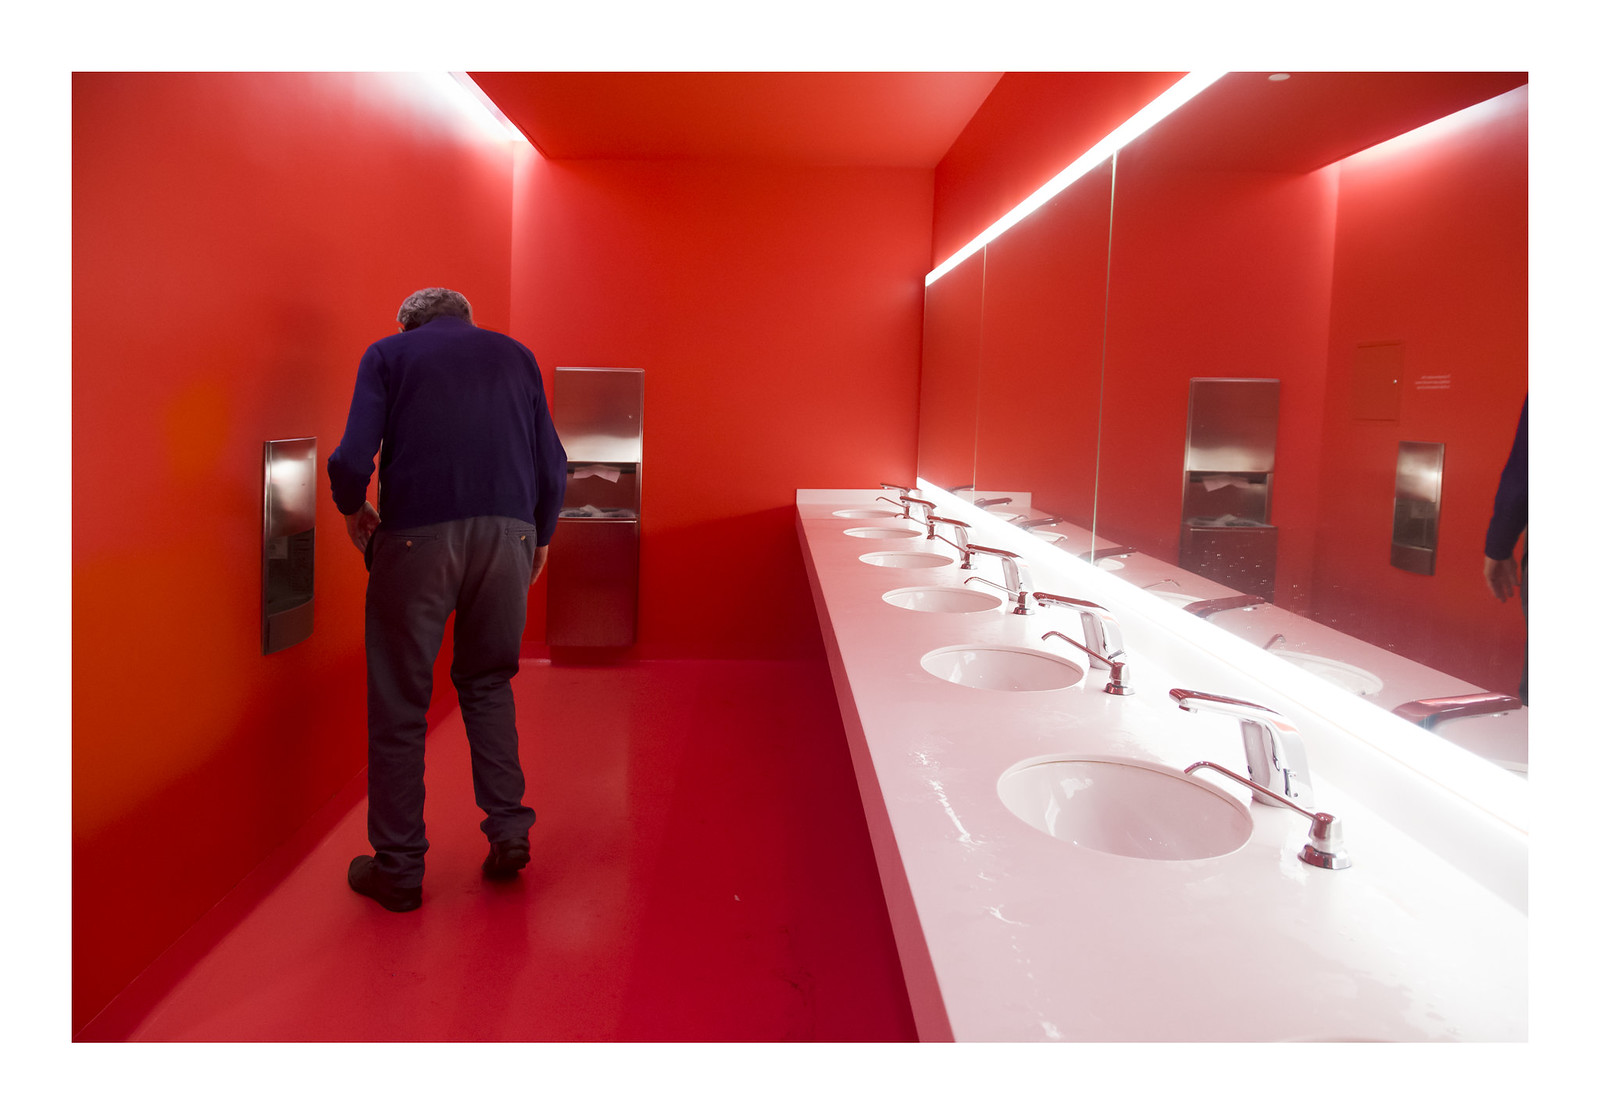 red restroom | by philippe*